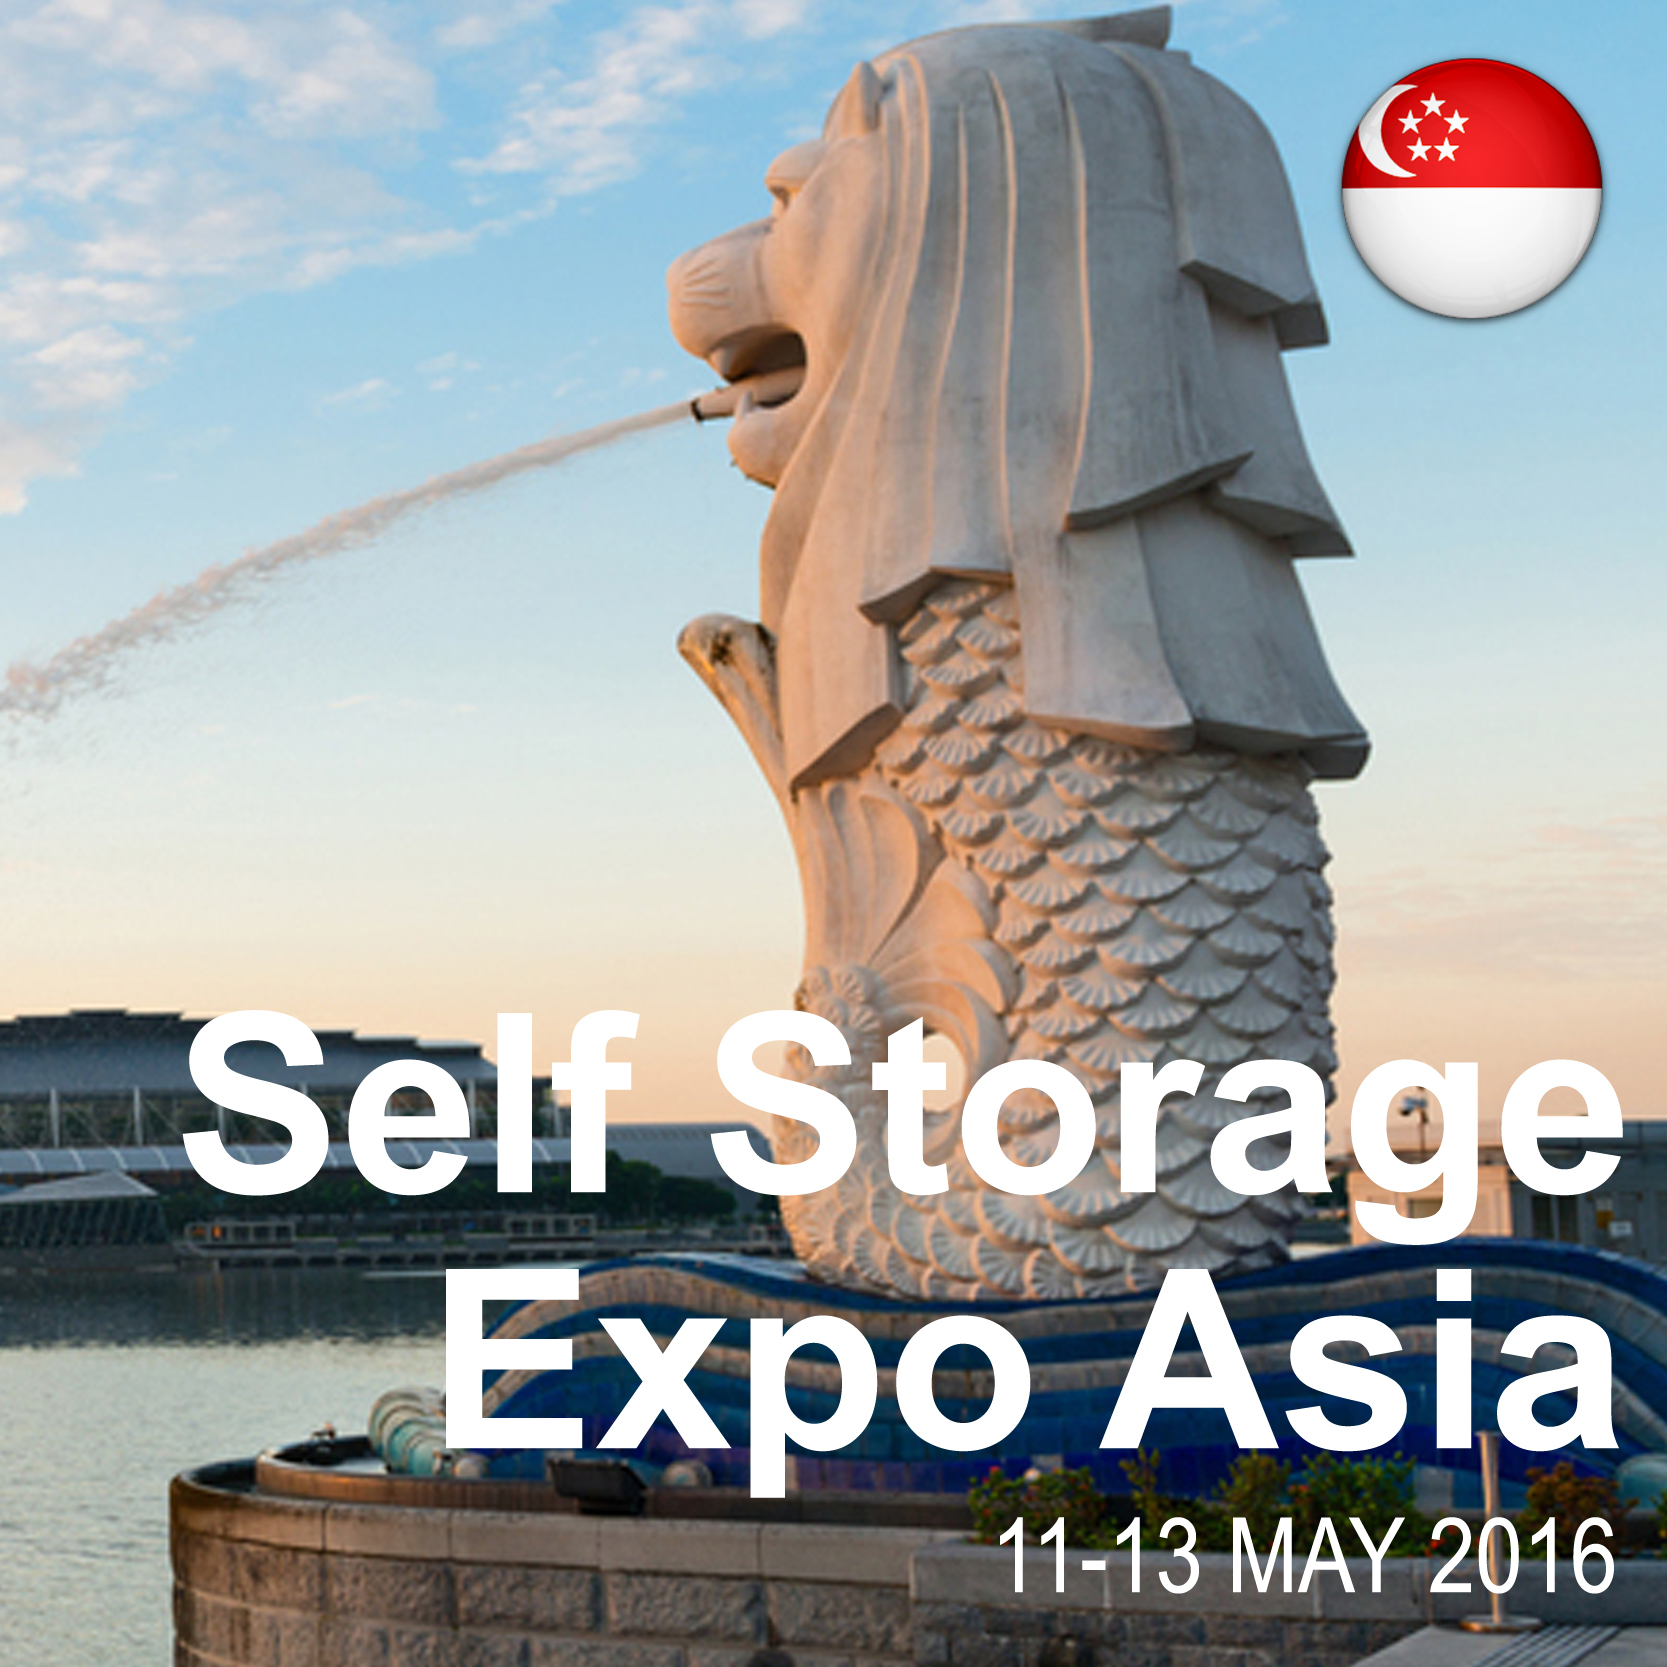 May 11-13 - Self Storage Expo Asia 2016